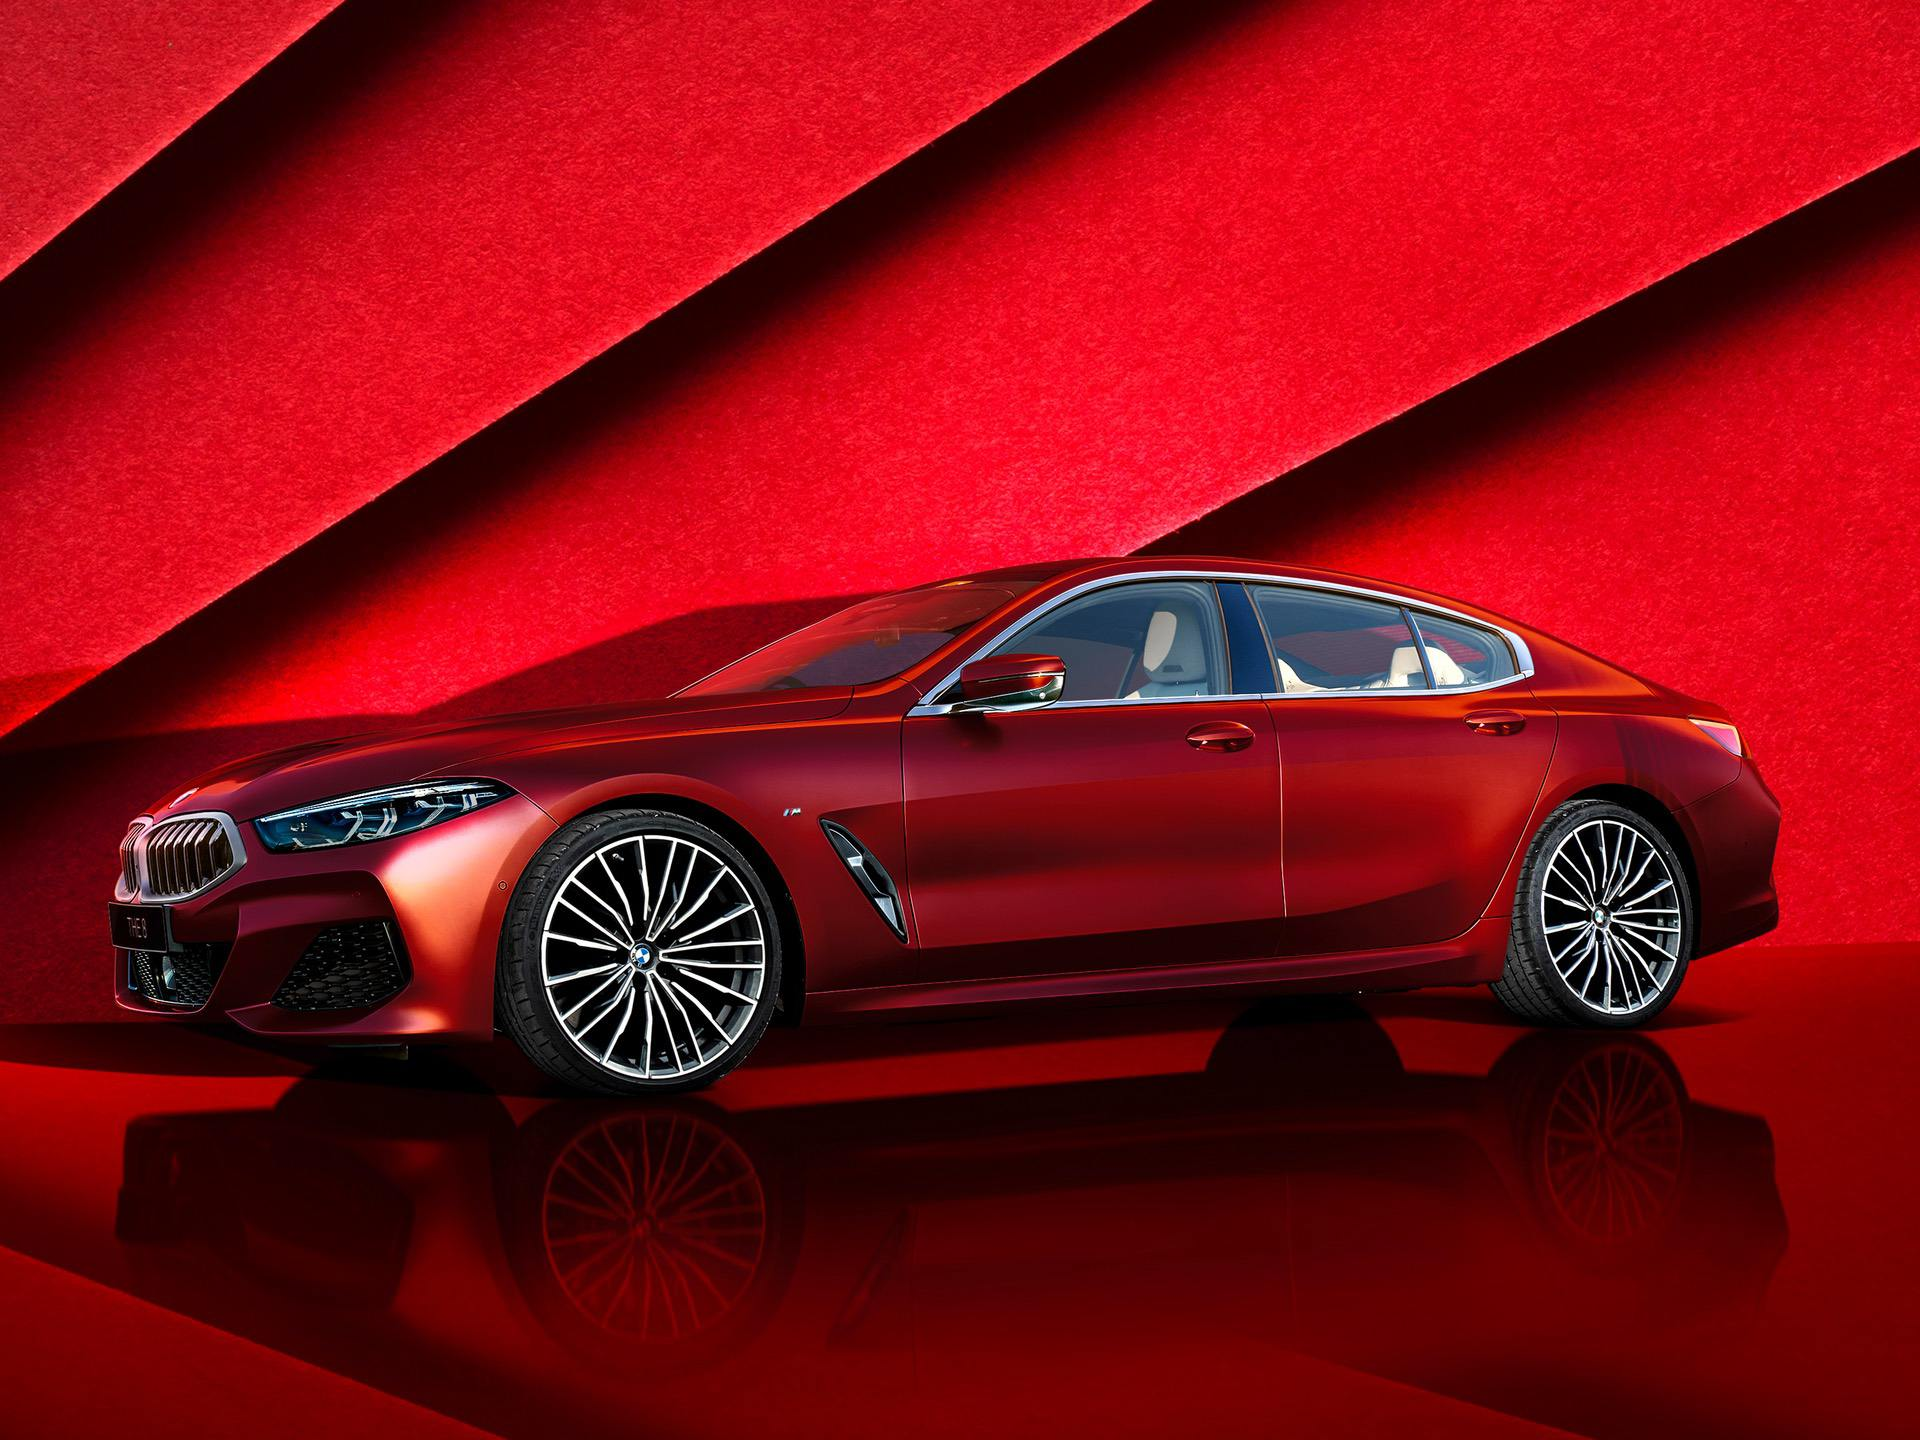 Collector's Edition: BMW 8 Series Gran Coupe in individual colors